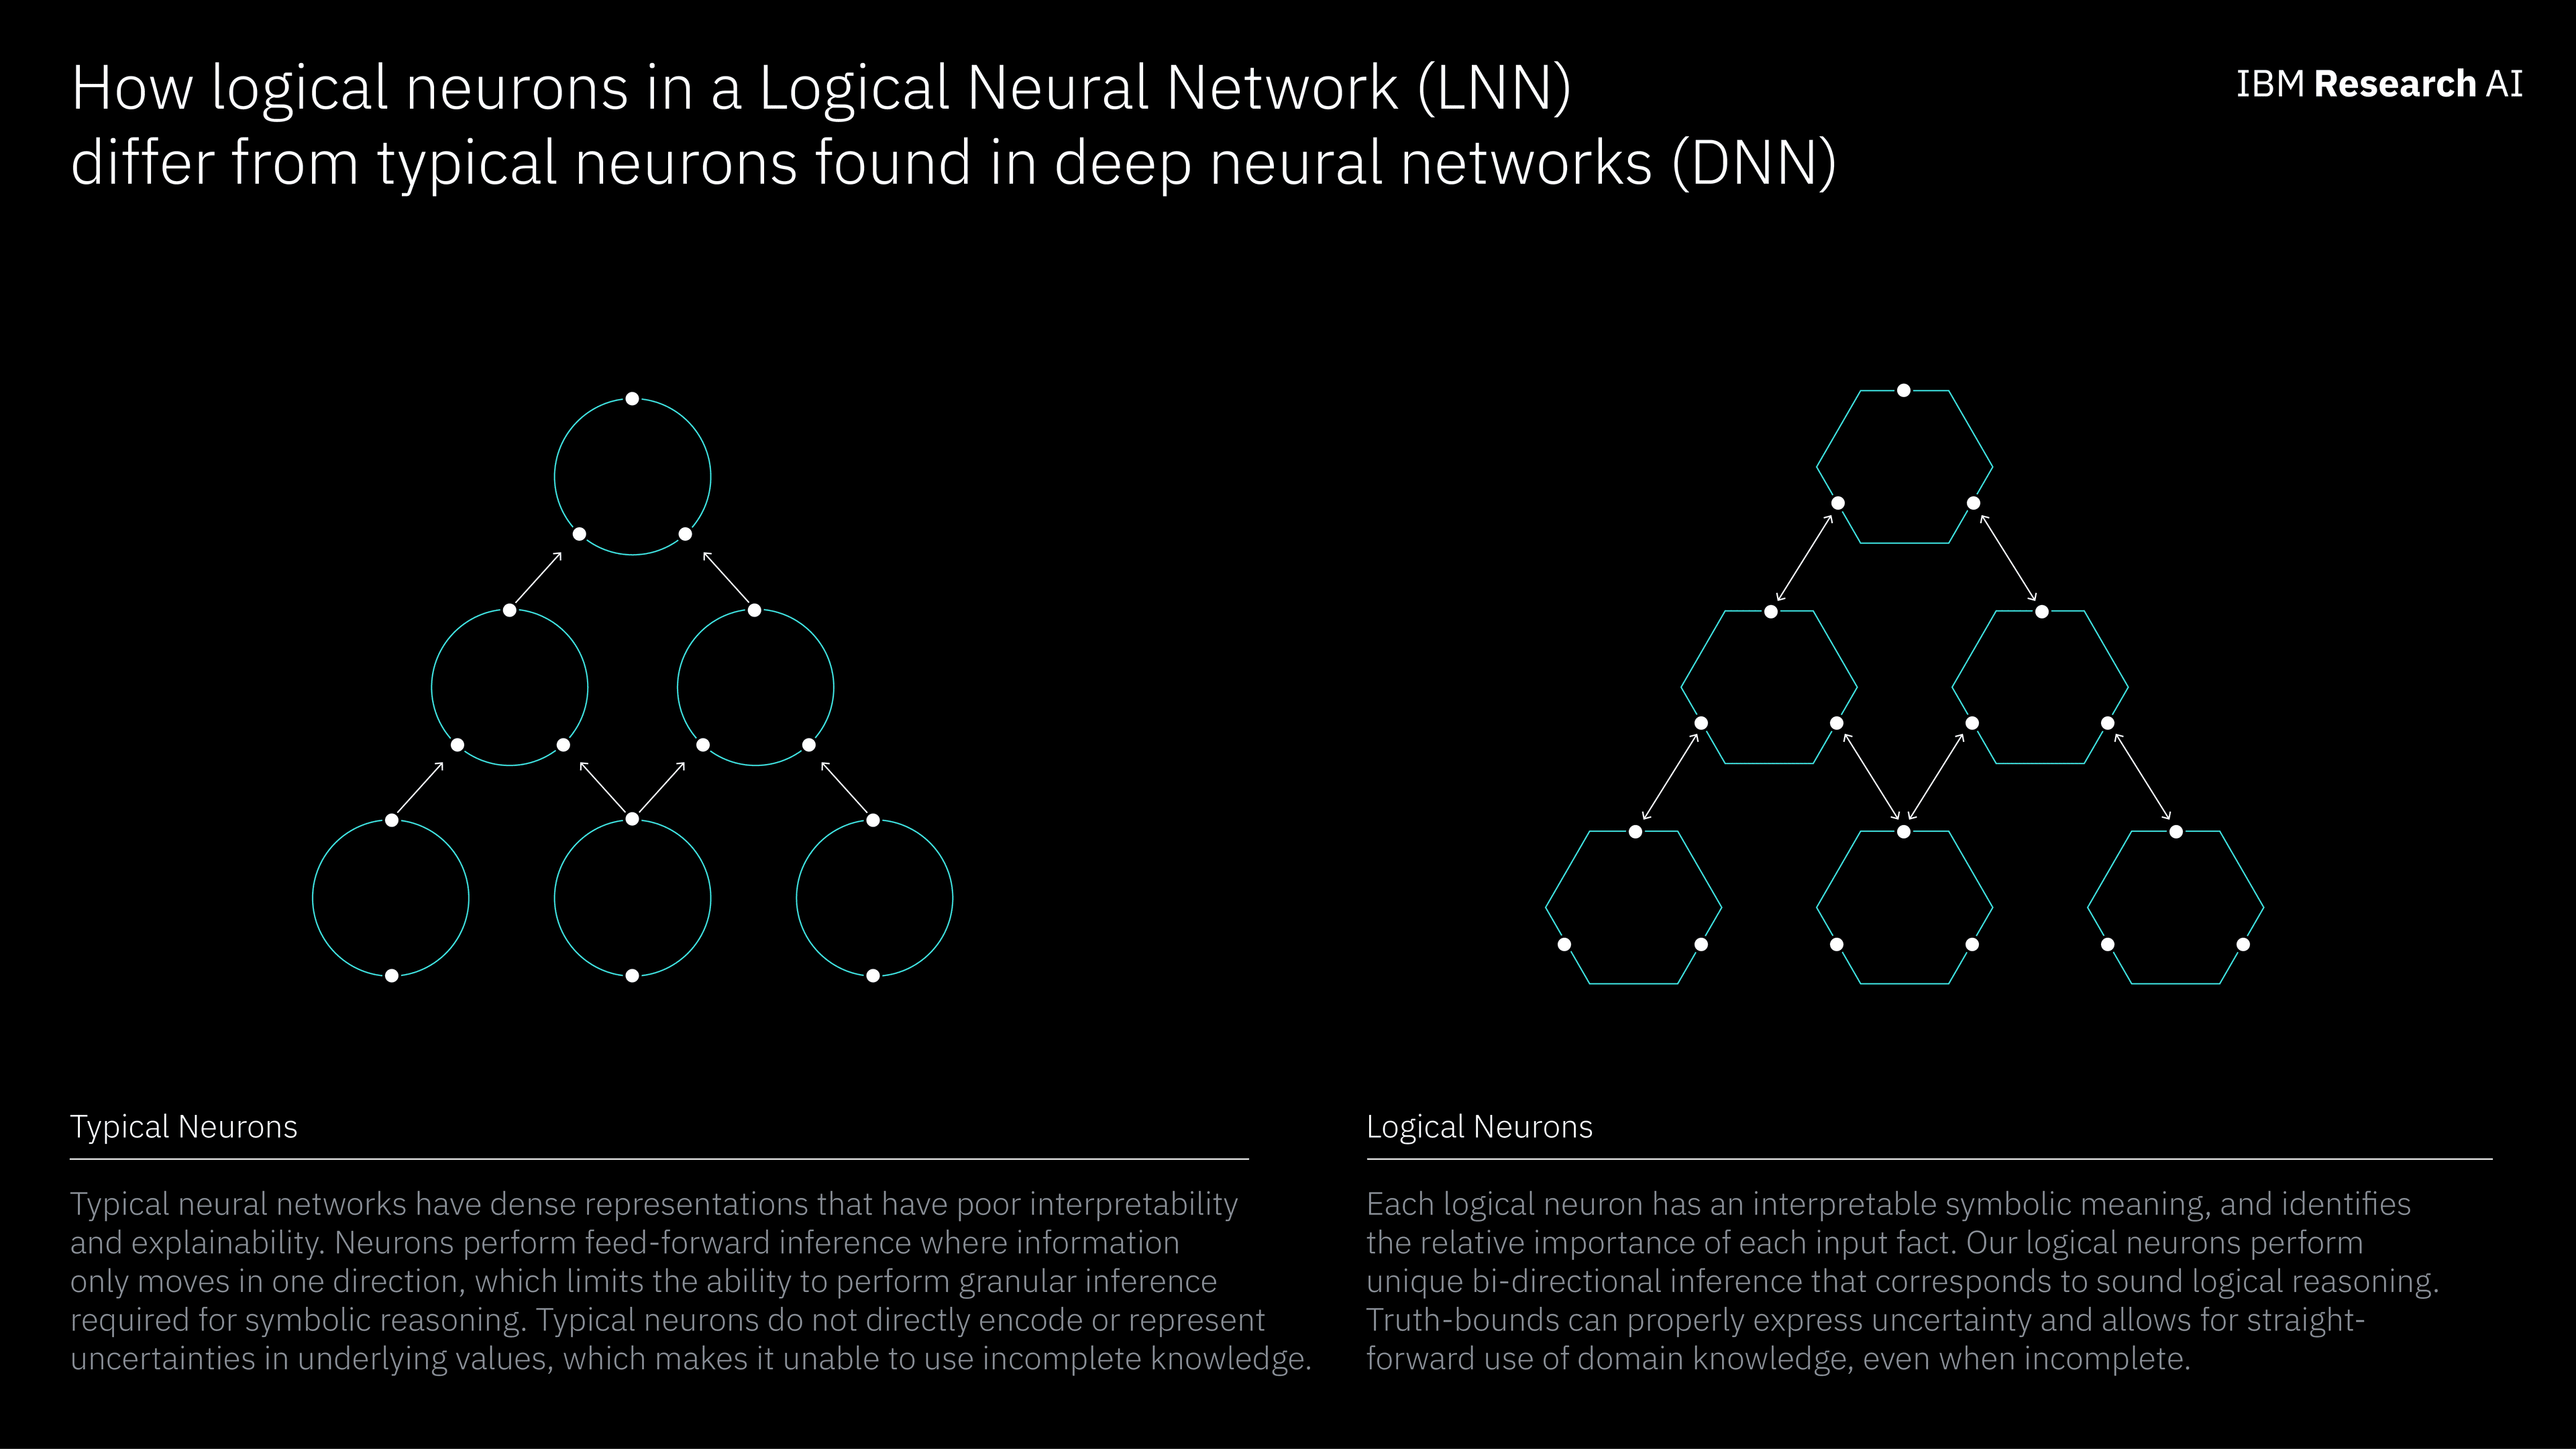 Graphic showing the difference between typical neurons and logical neurons